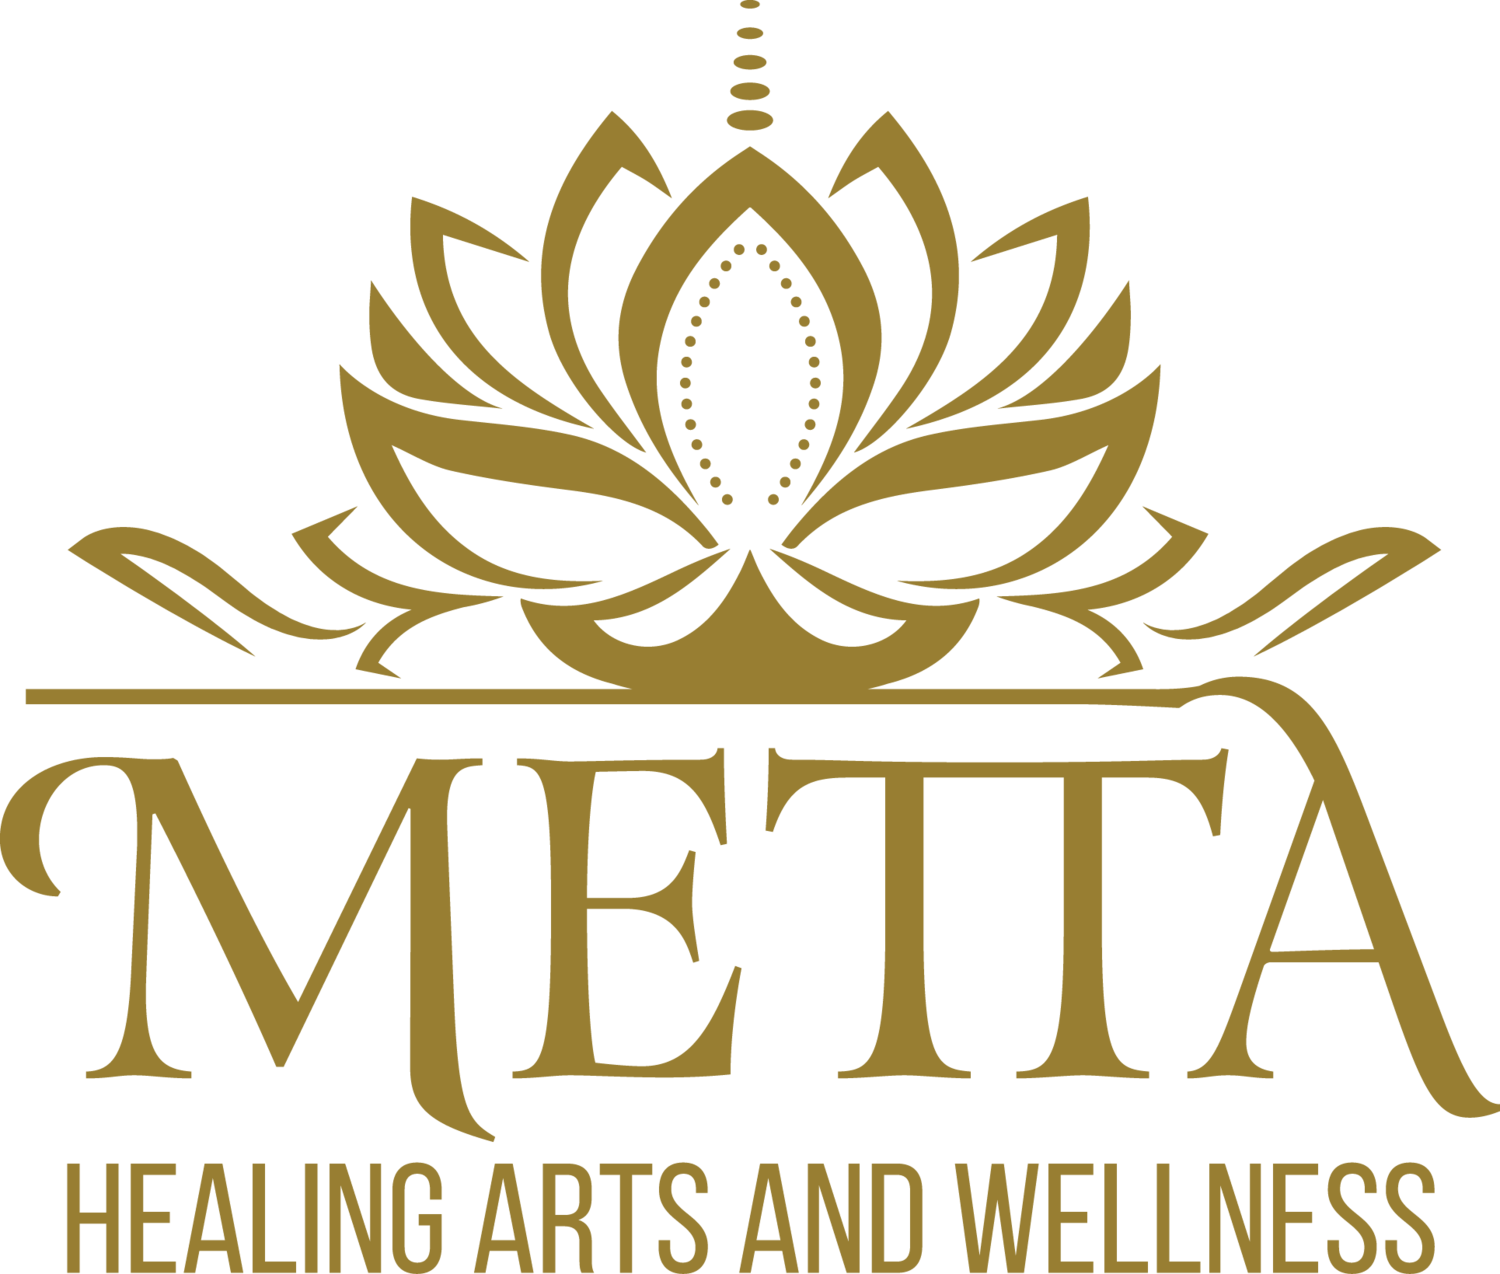 Metta Healing Arts & Wellness | Massage Therapy in Burlington, VT